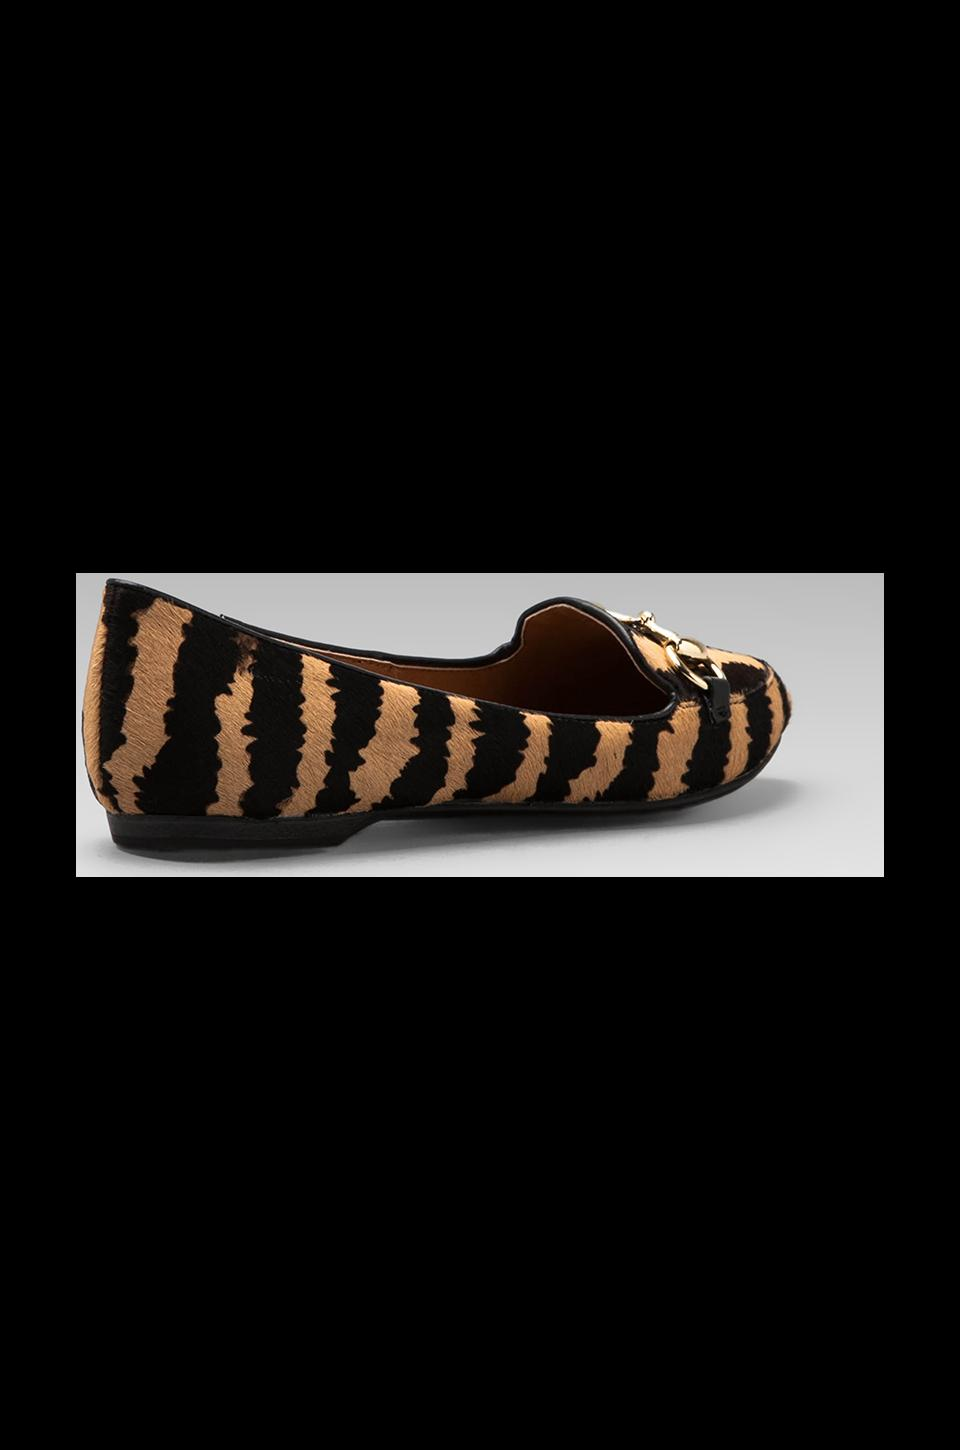 Dolce Vita Langley Loafer with Calf Hair  in Tiger Print